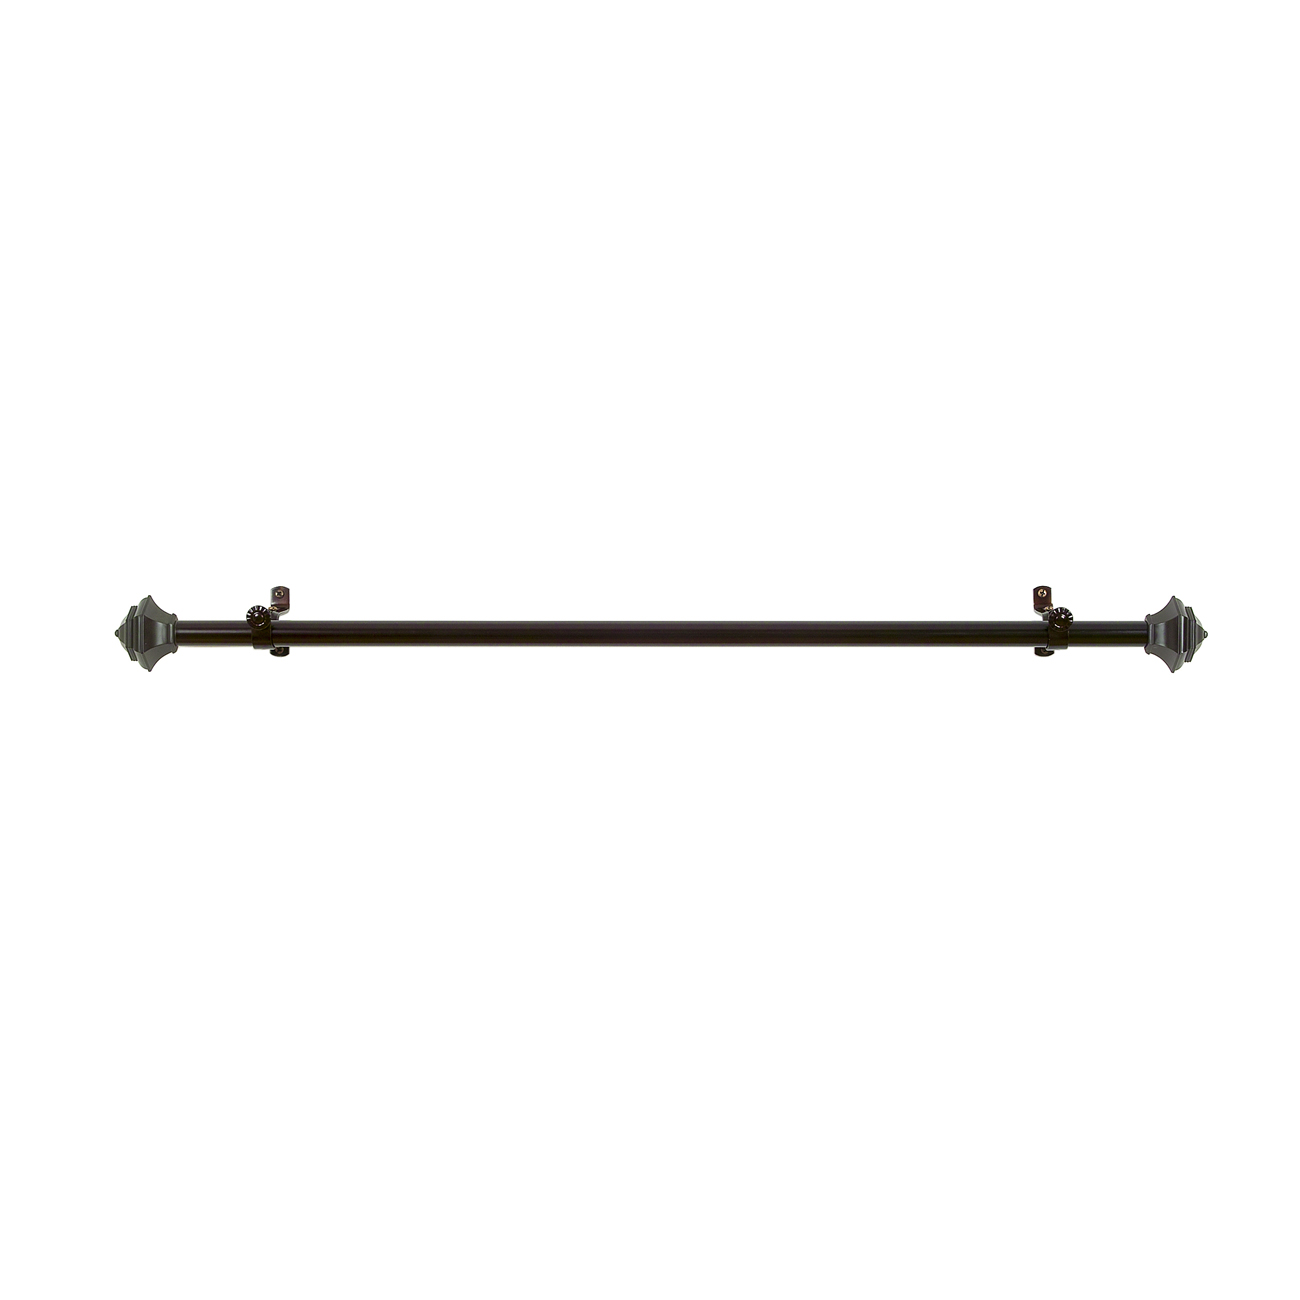 Curtain-Rod-Decorative-Telescopic-Cafe-Window-Drapery-Rods-Set-w-Modern-Finials thumbnail 5